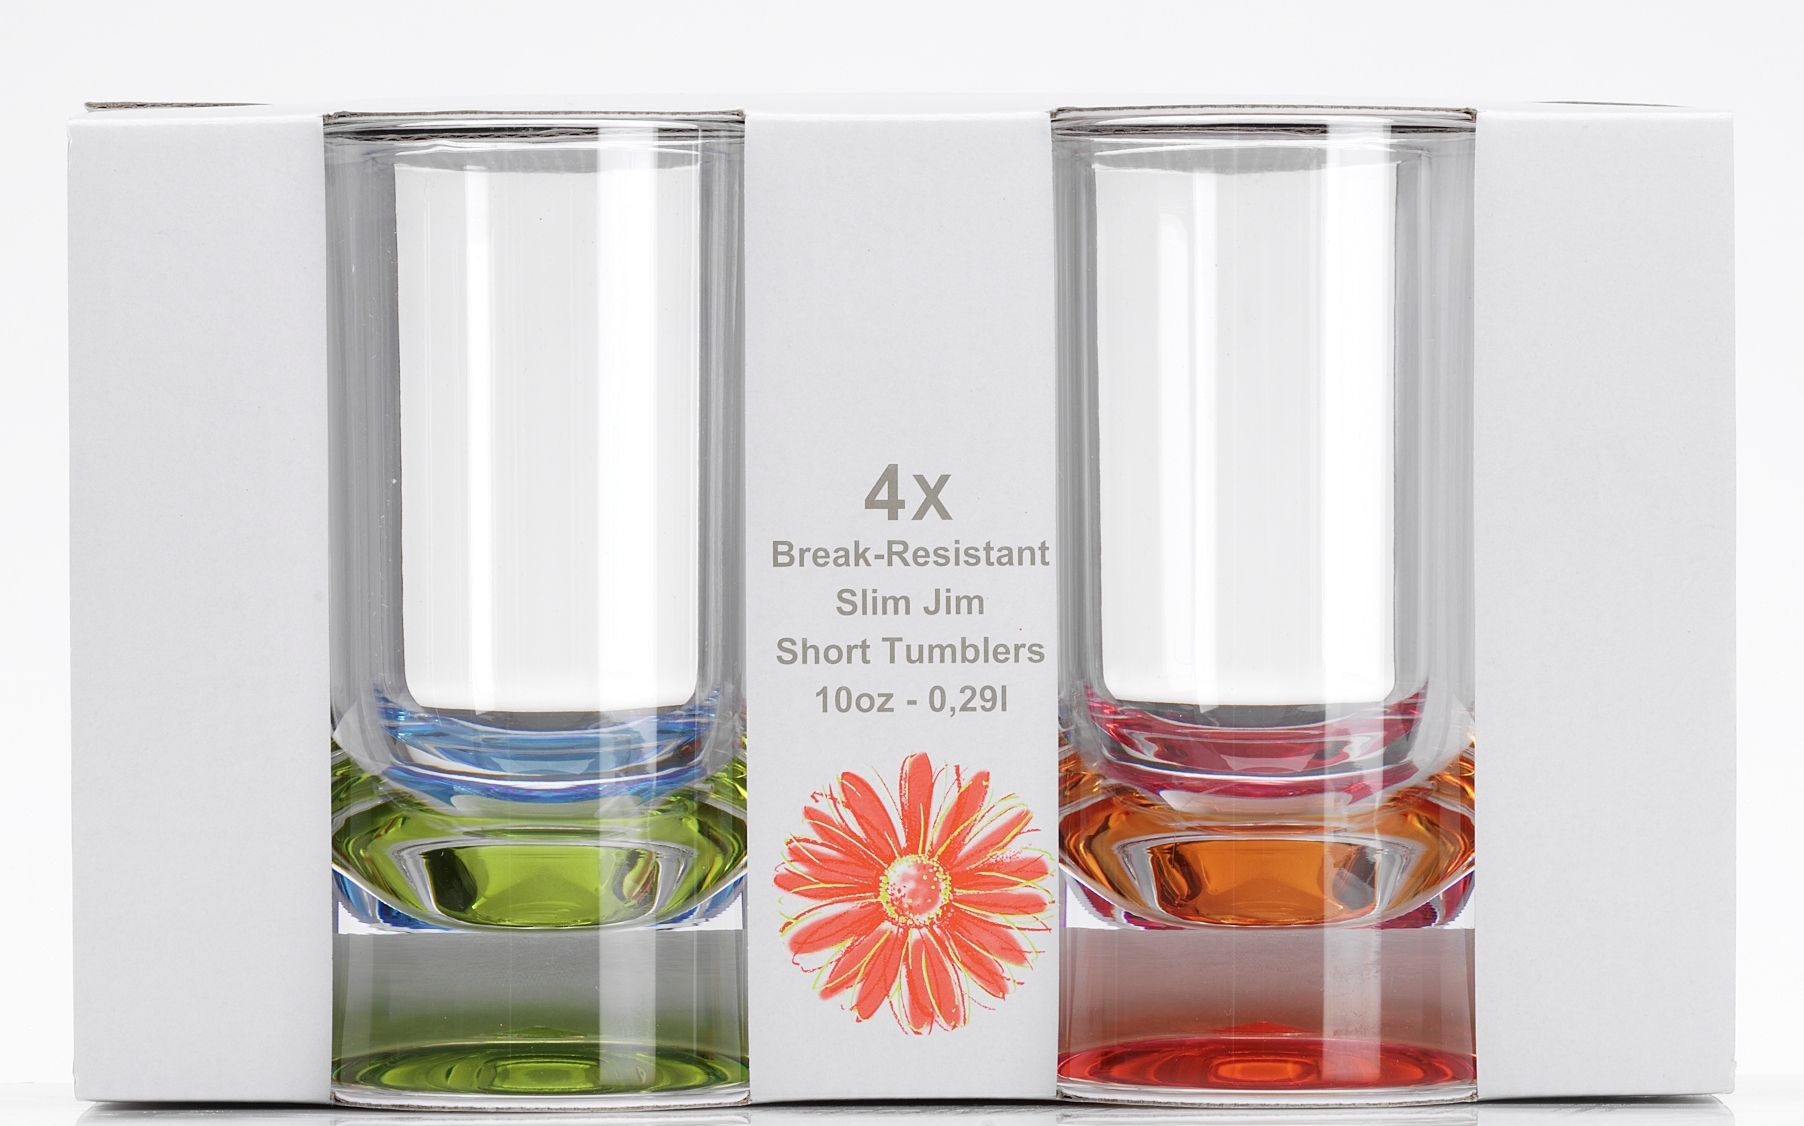 9af652cc616 Party Acrylic Slim Jim Tumbler - 4pk by Flamefield - Wow Camping